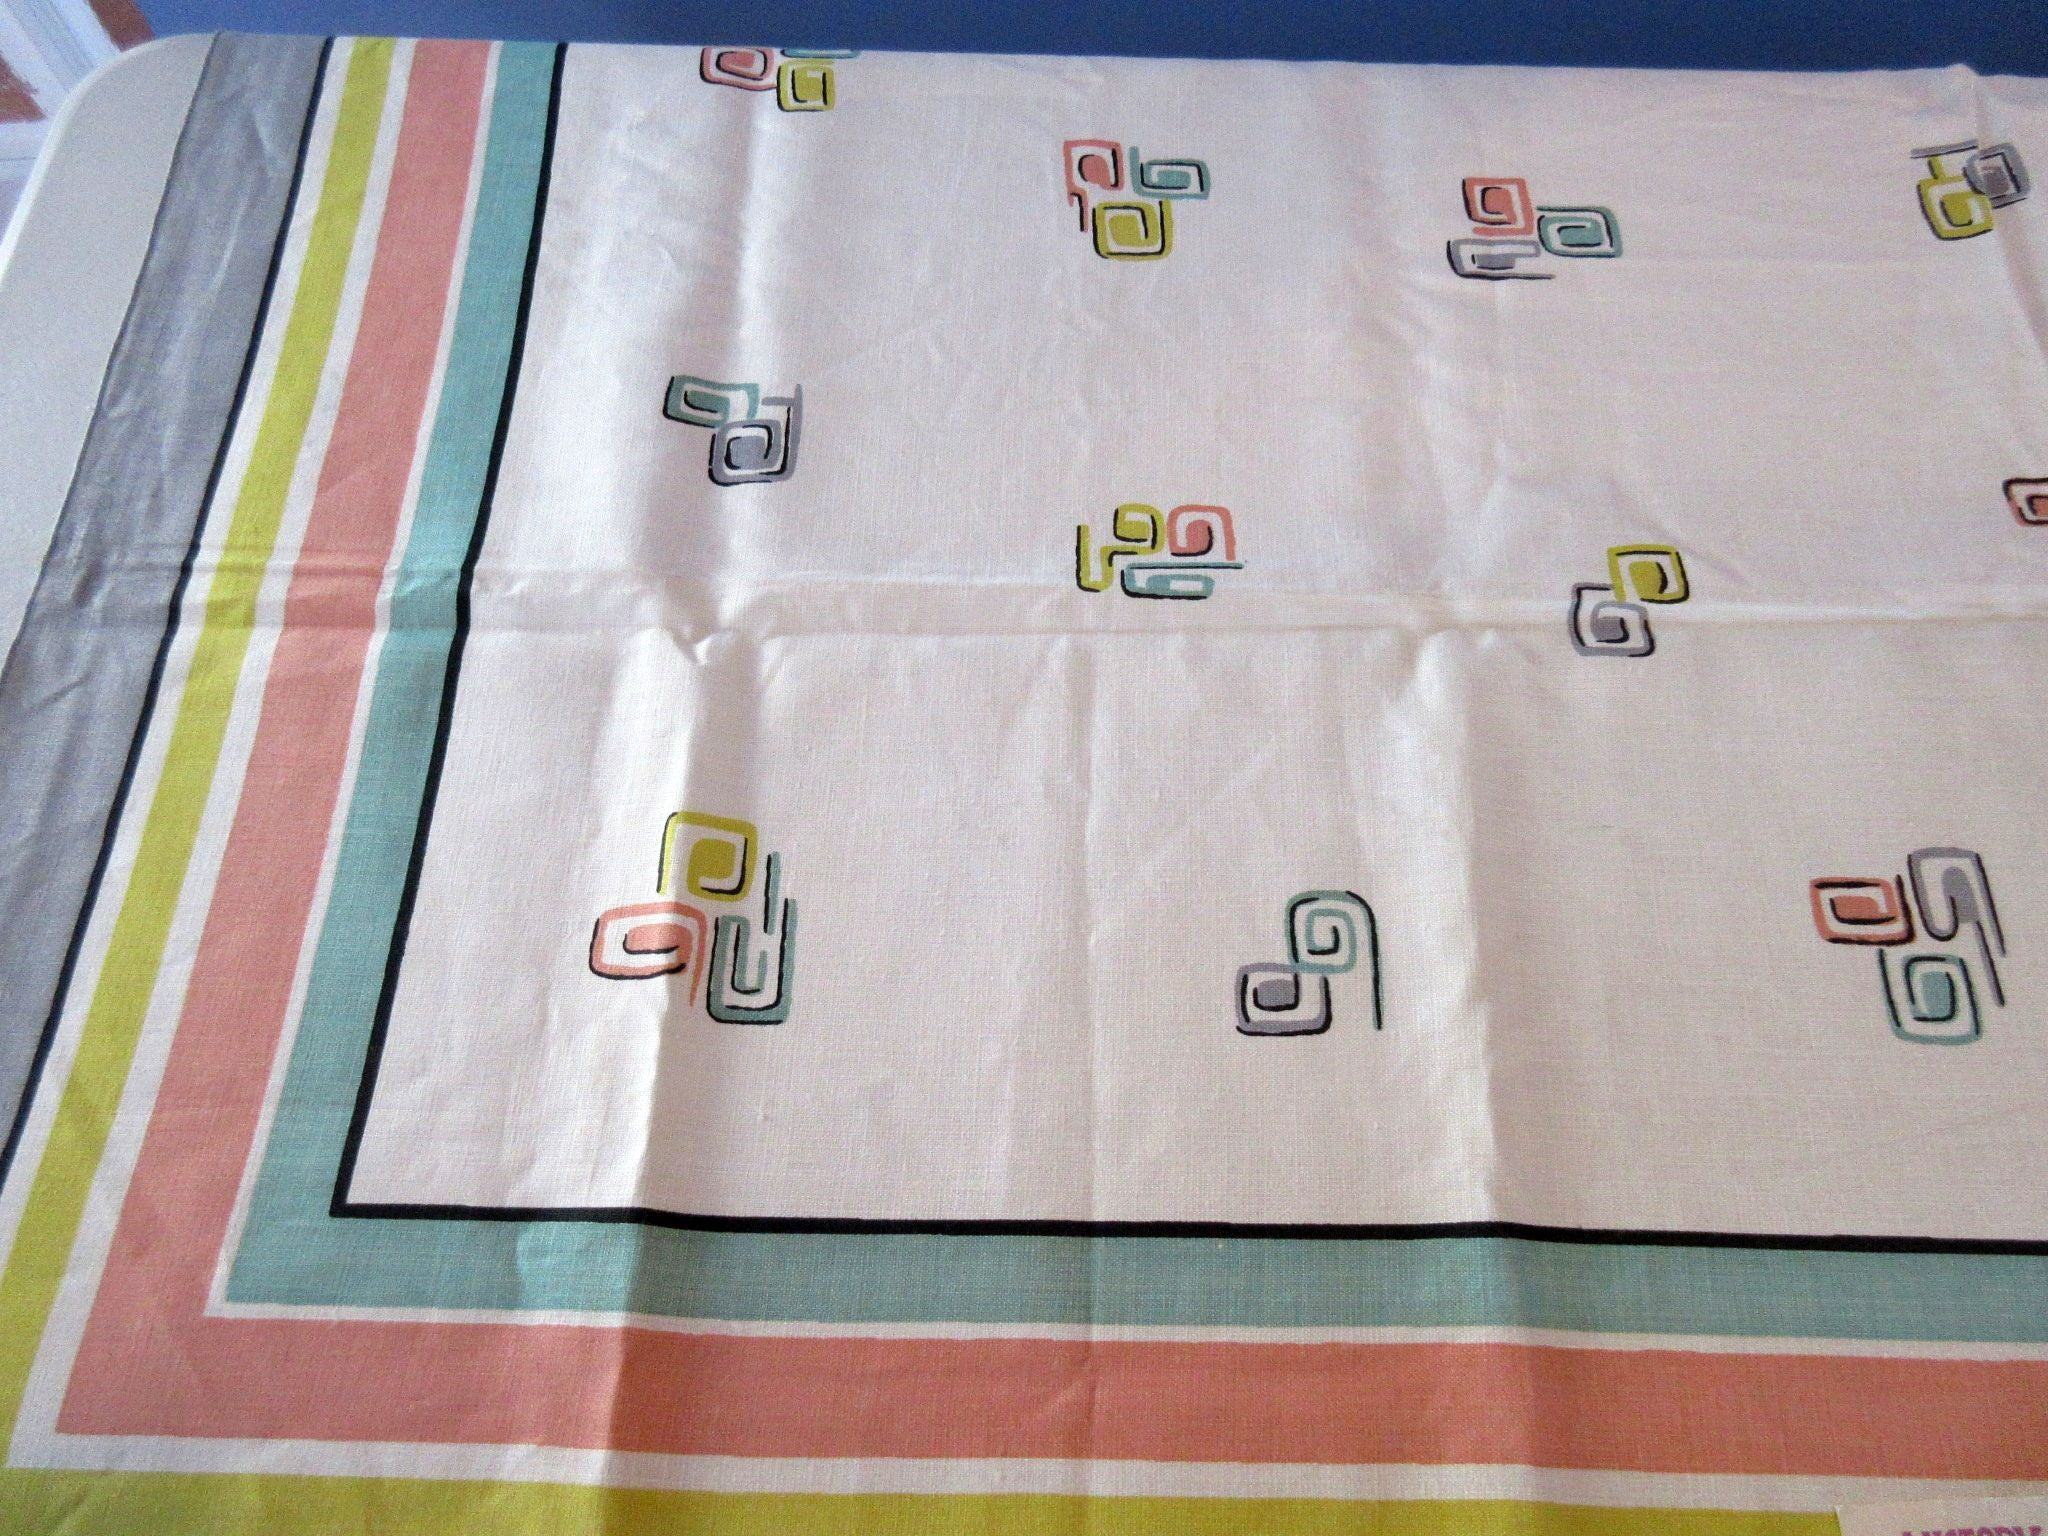 MCM Pastel Squiggles Geometric Linen MWT Novelty Vintage Printed Tablecloth (52 X 51)